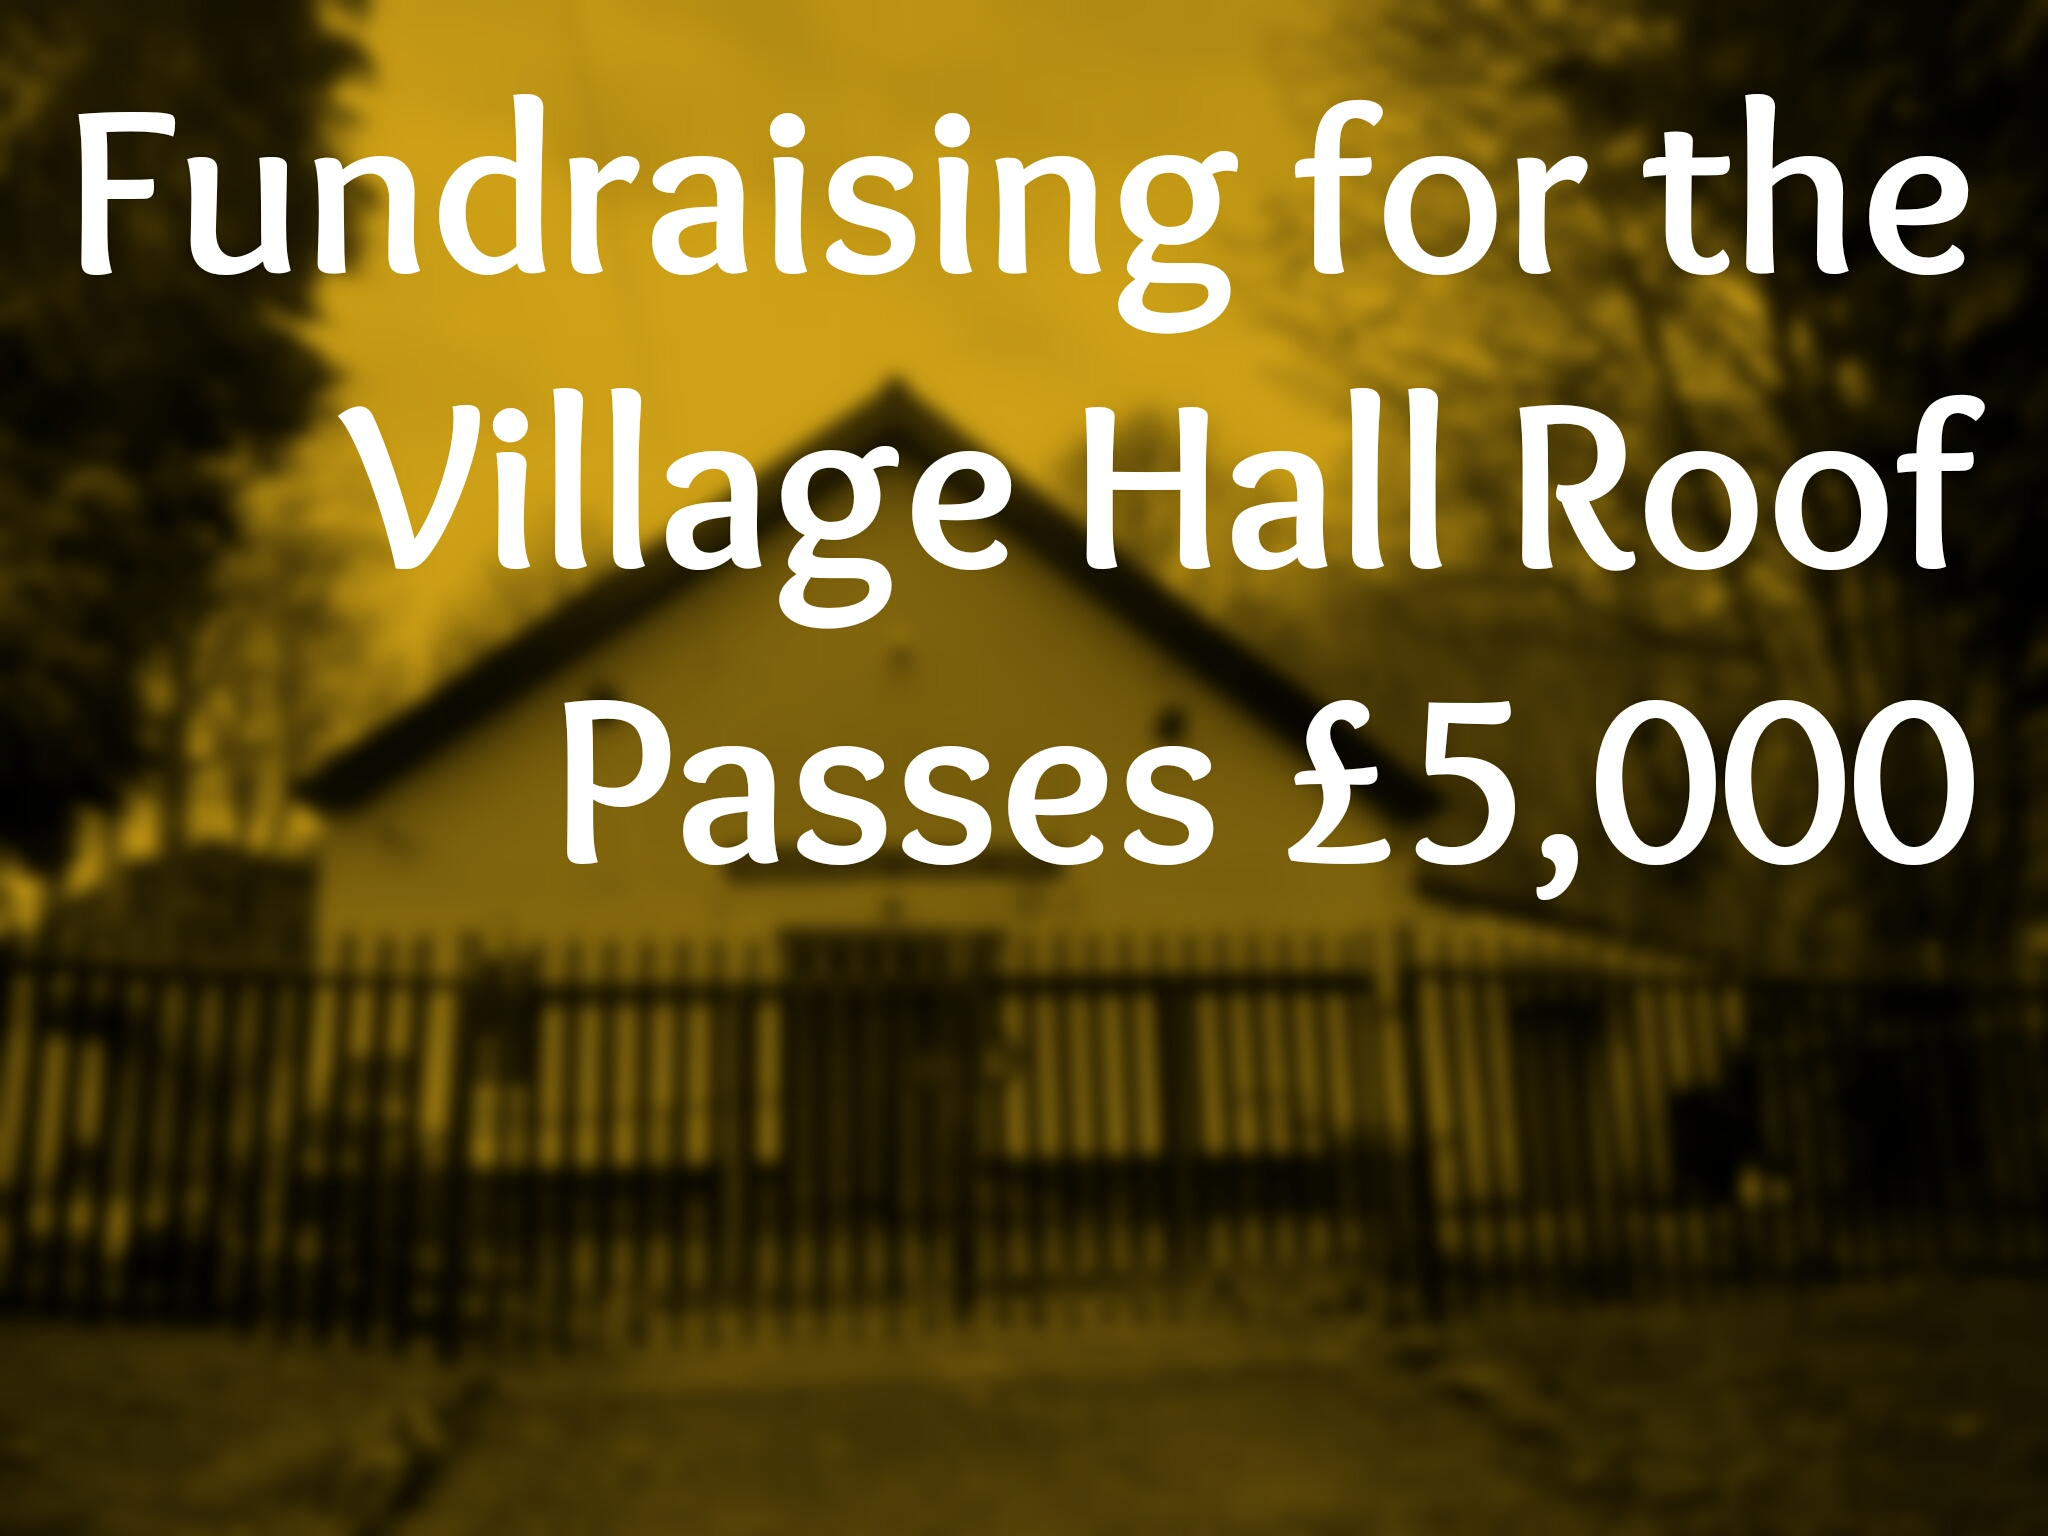 Fundraising for the Village Hall Roof Passes £5,000